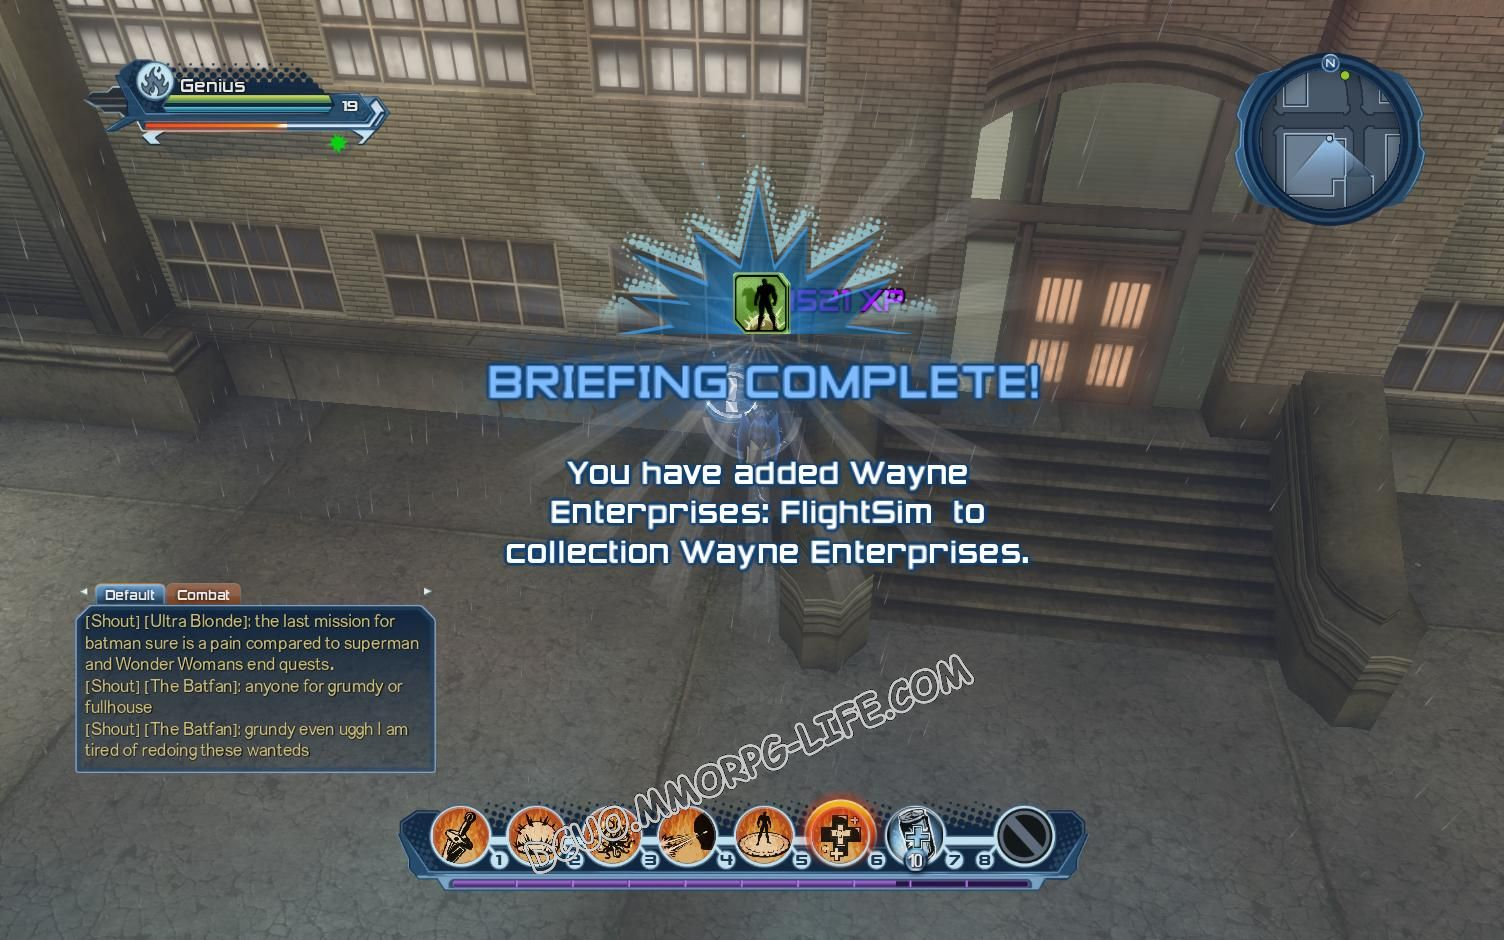 Briefing: Wayne Enterprises, step 3 Wayne Enterprises: FlightSim  image 1861 middle size